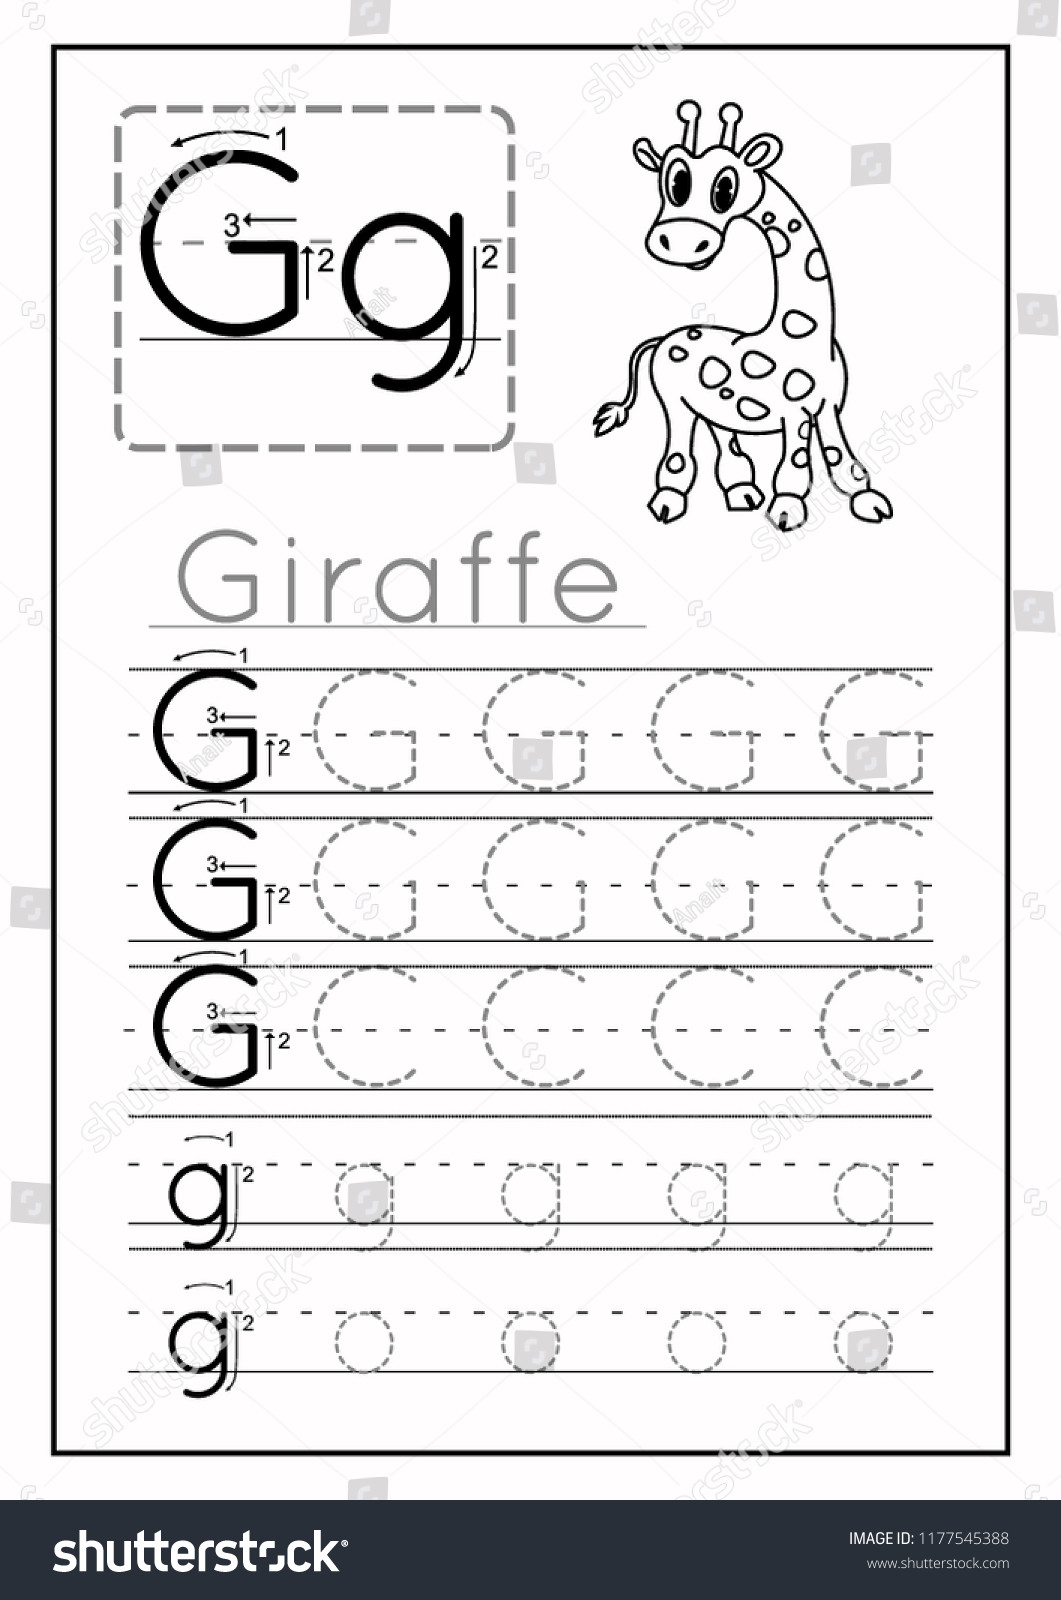 Letter G Worksheet Preschool Writing Practice Letter G Printable Worksheet Stock Vector